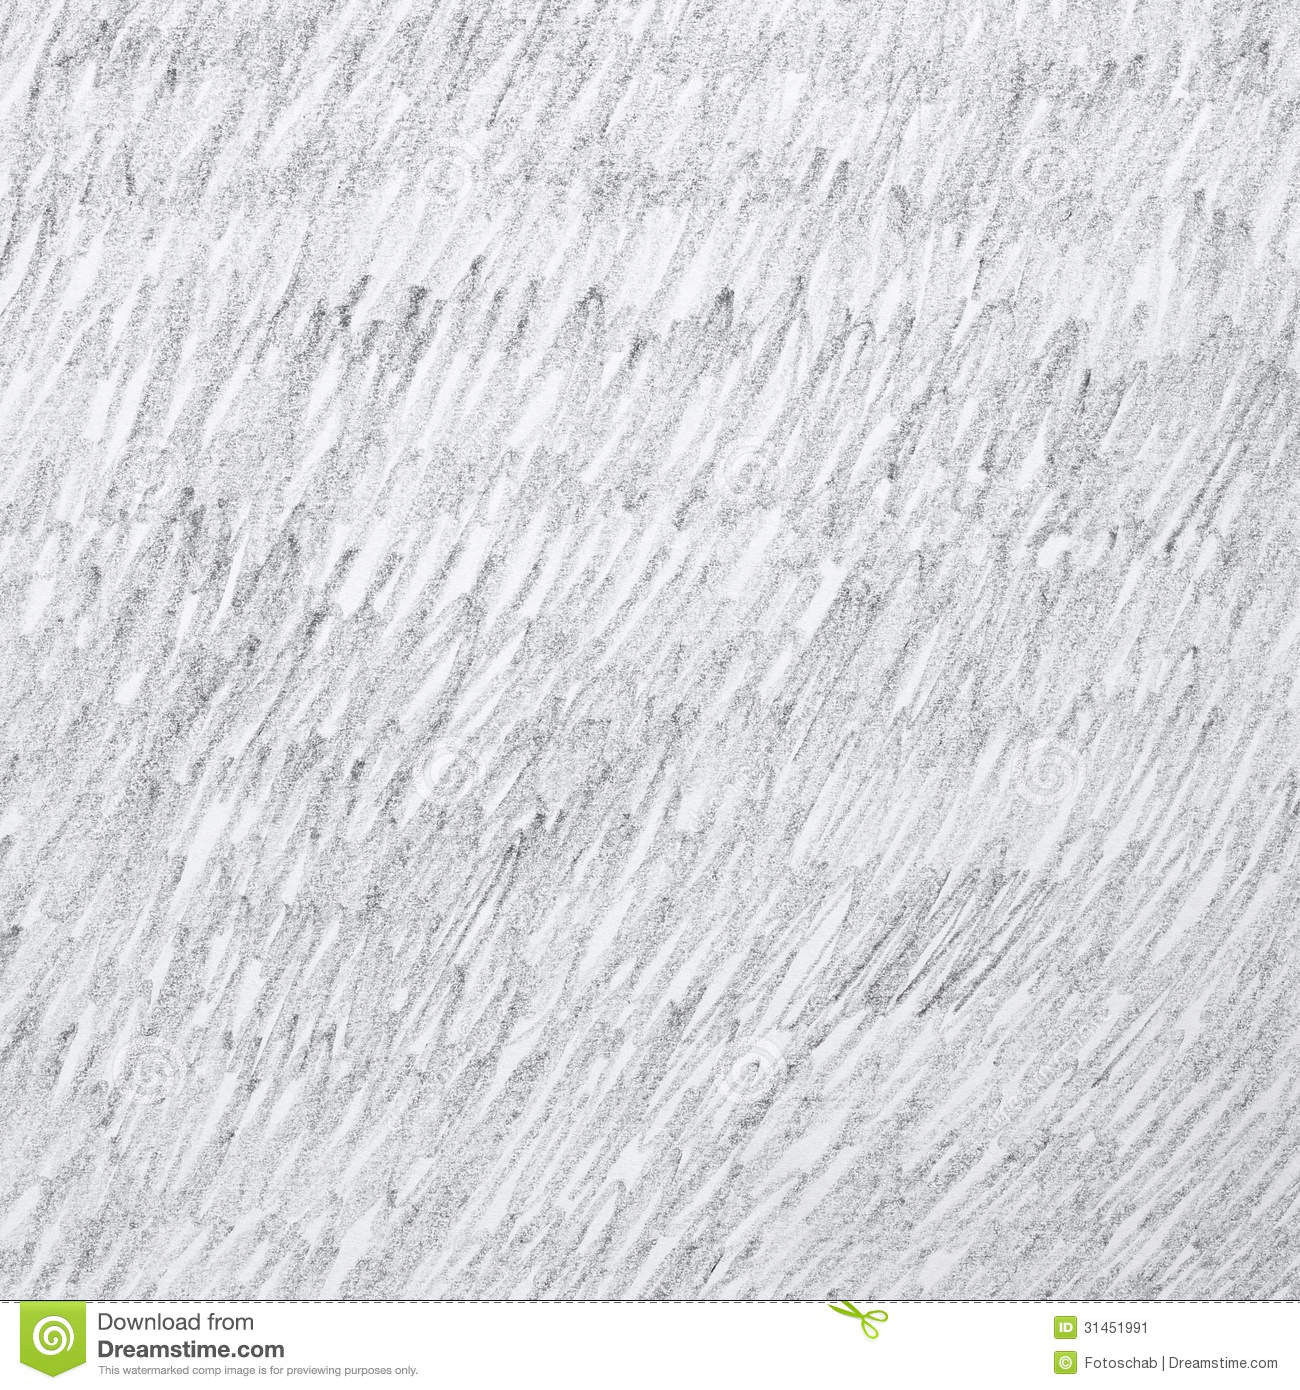 Pencil Scribbles Stock Image - Image: 31451991